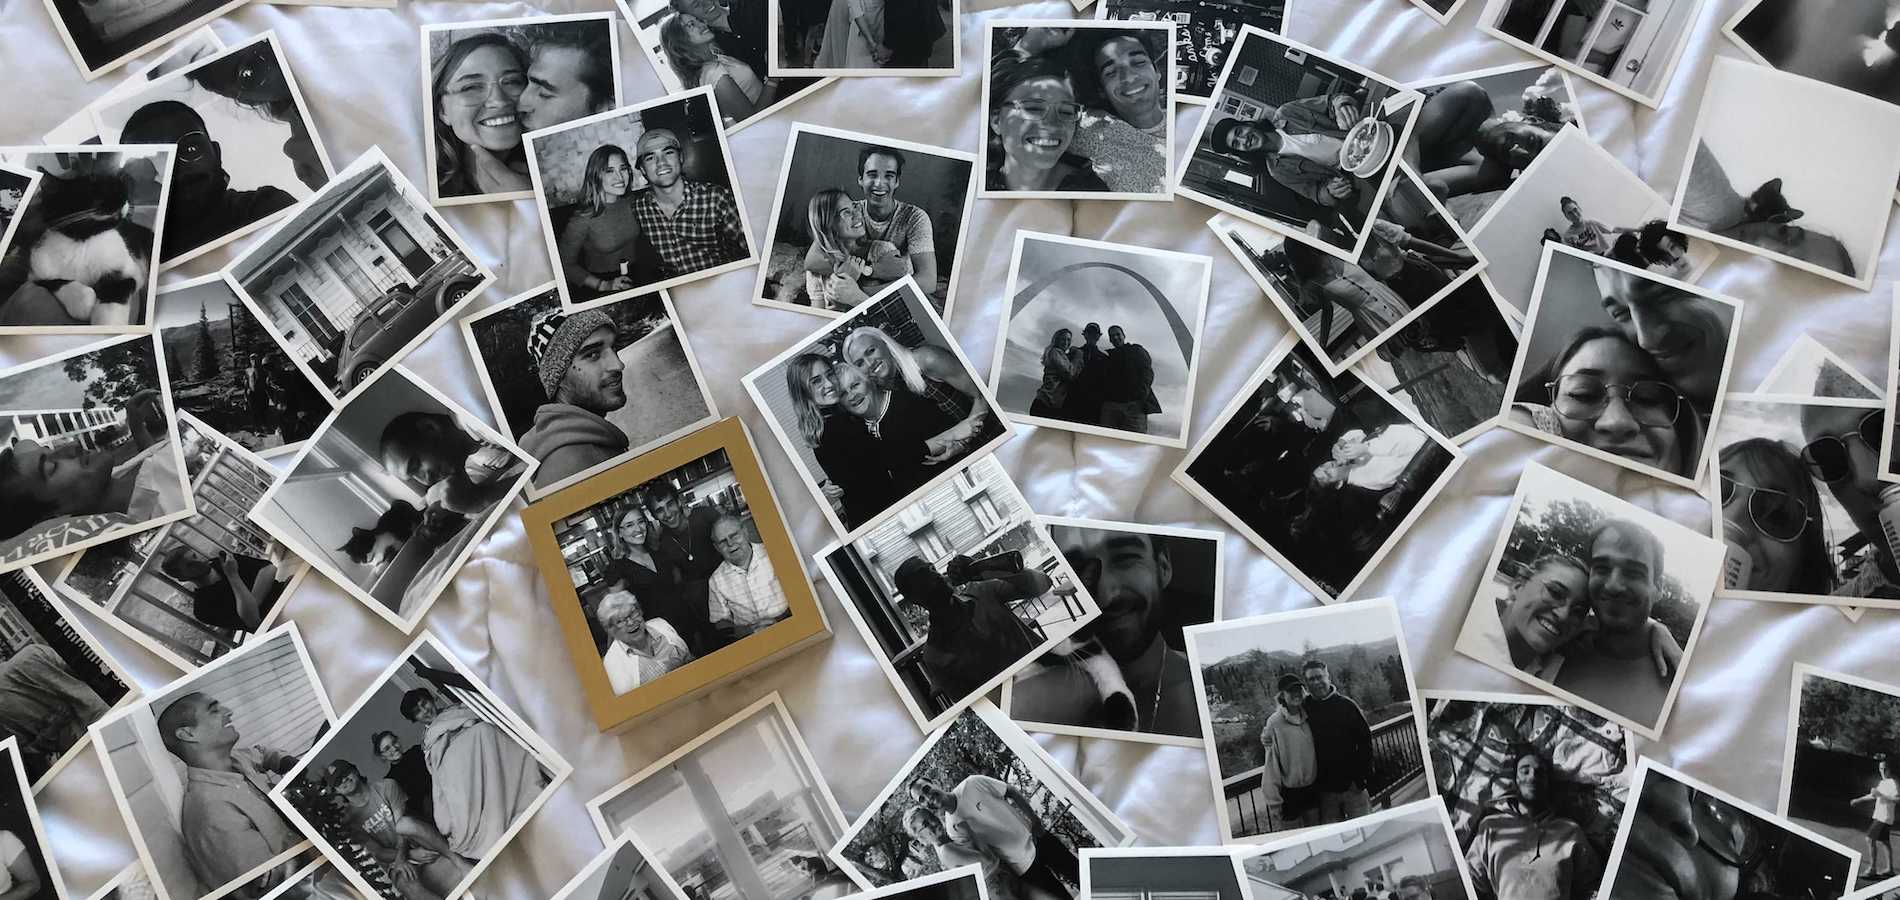 Artifact Uprising photo prints scattered all over bed featuring black-and-white photos